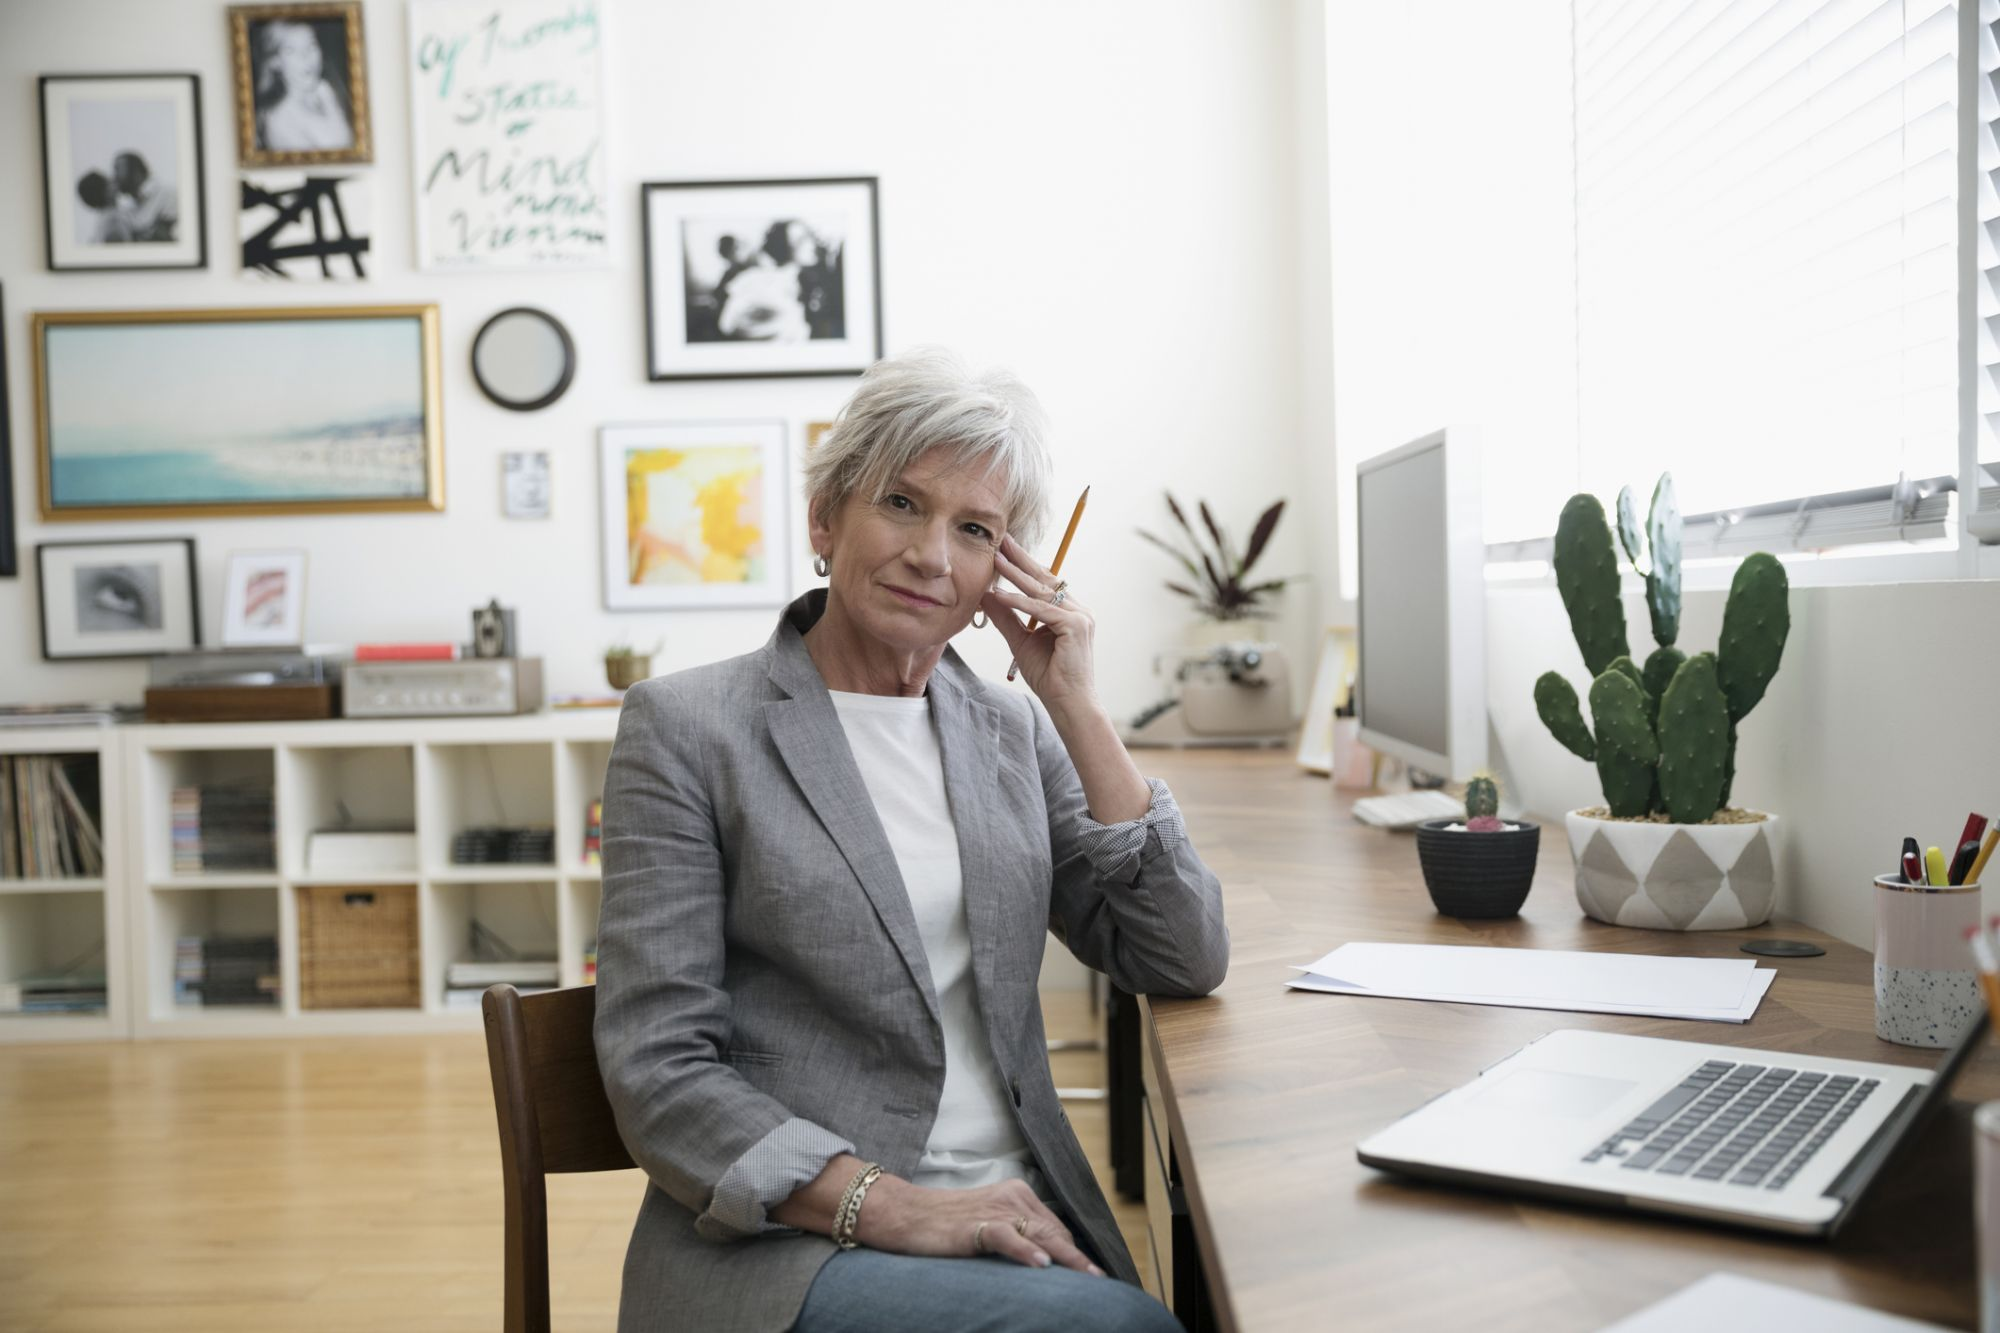 The 3 Things Women Over 50 Can Do to Keep Their Jobs